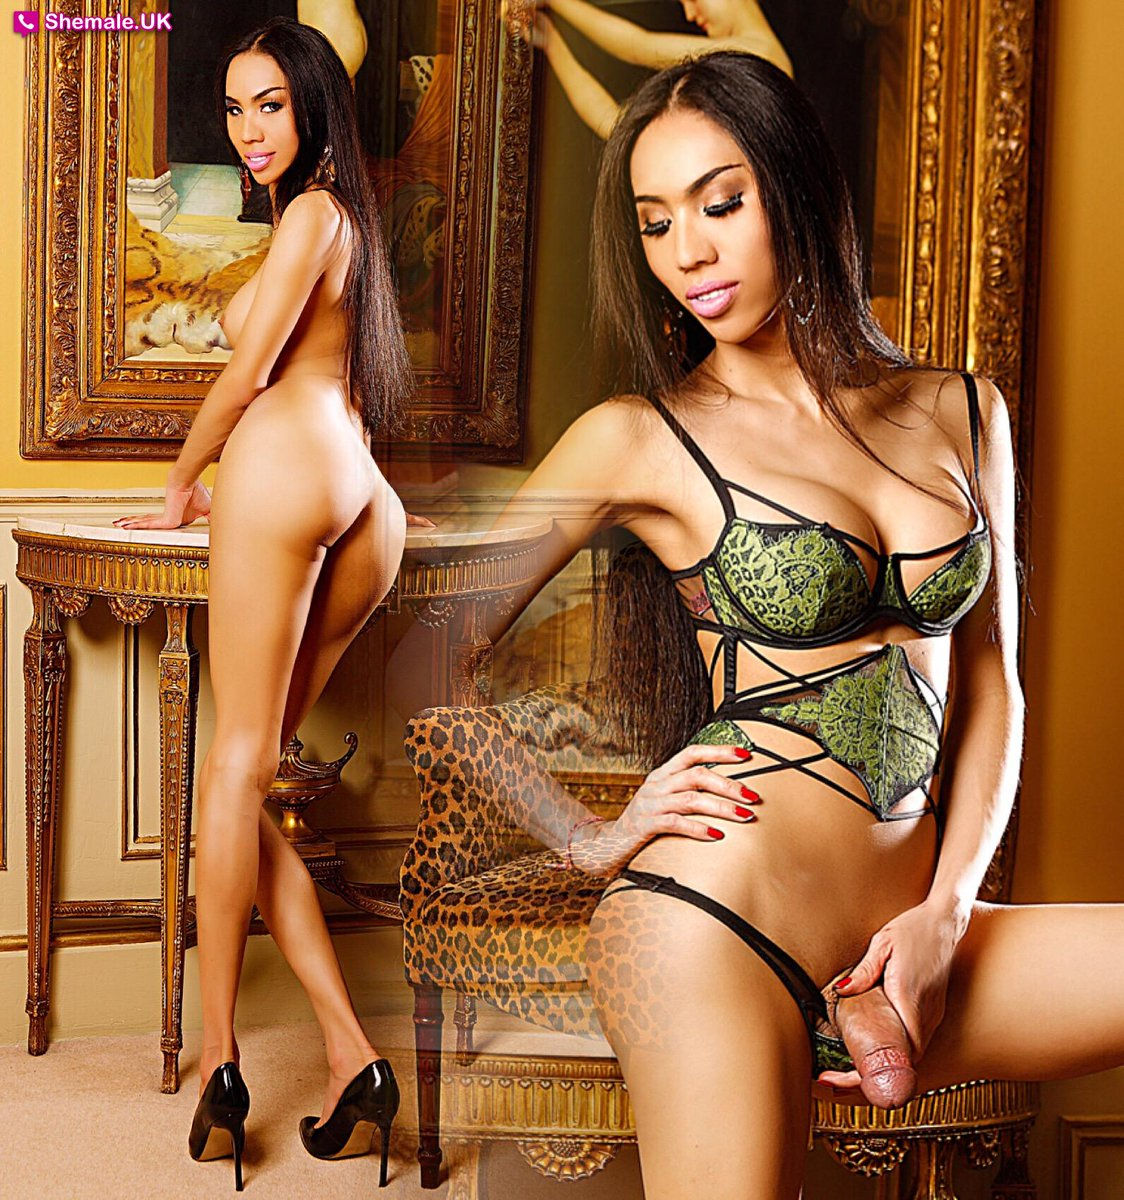 Glasgow Shemale Escorts